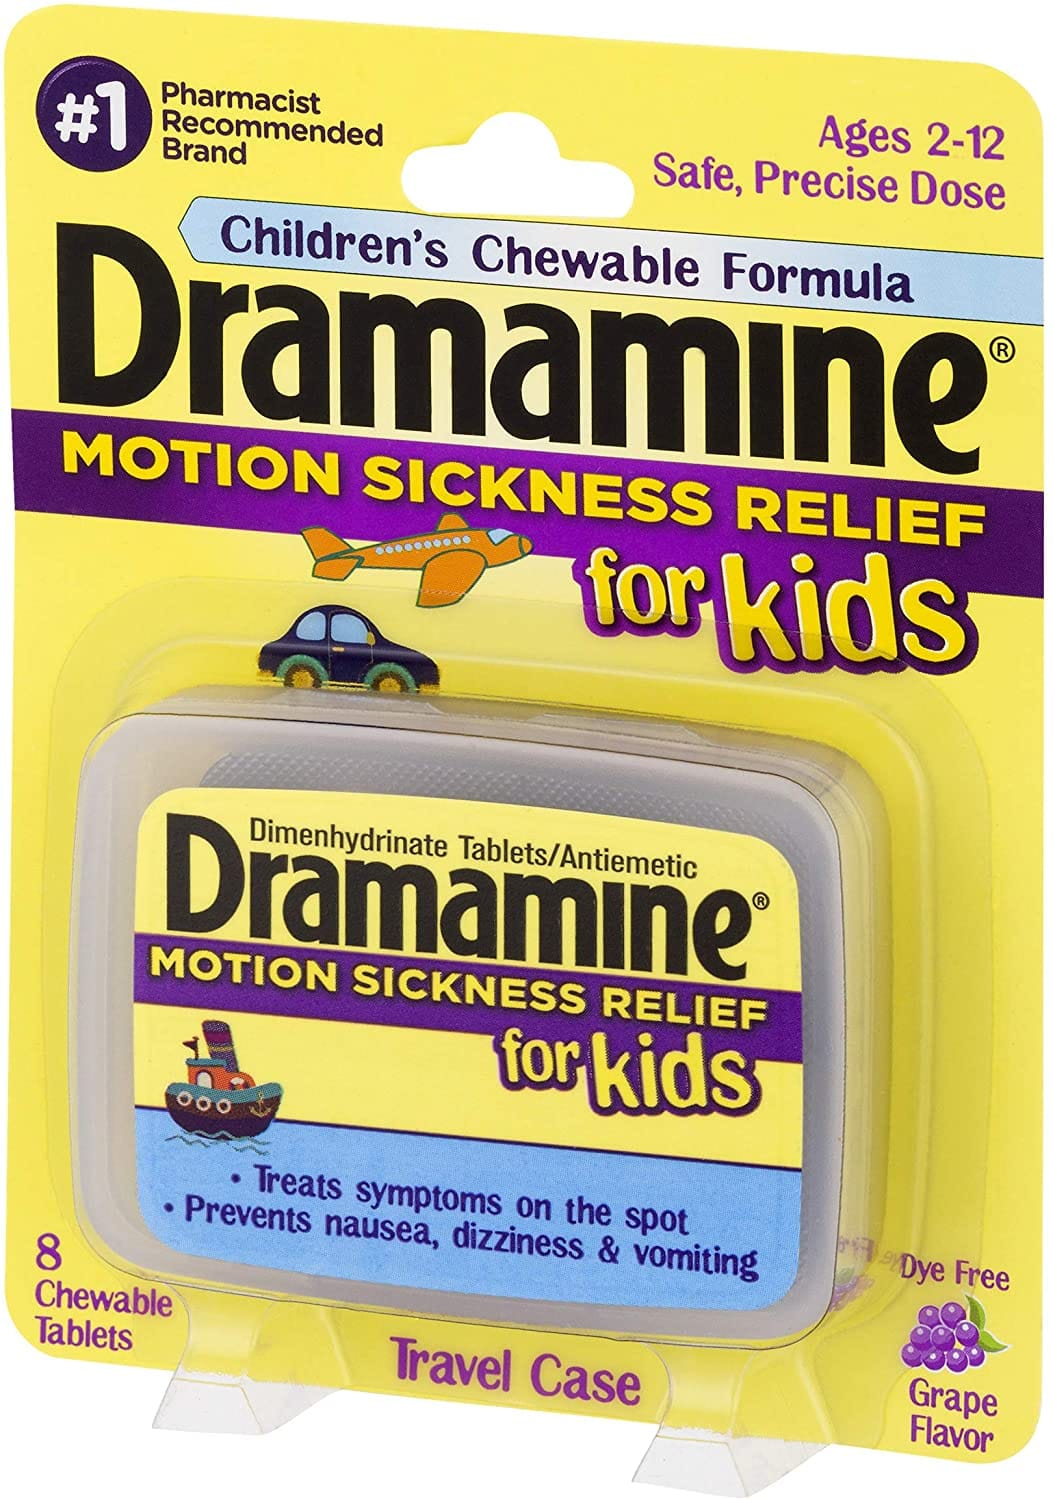 Dramamine Motion Sickness Relief for Kids, 8 Count $2.19